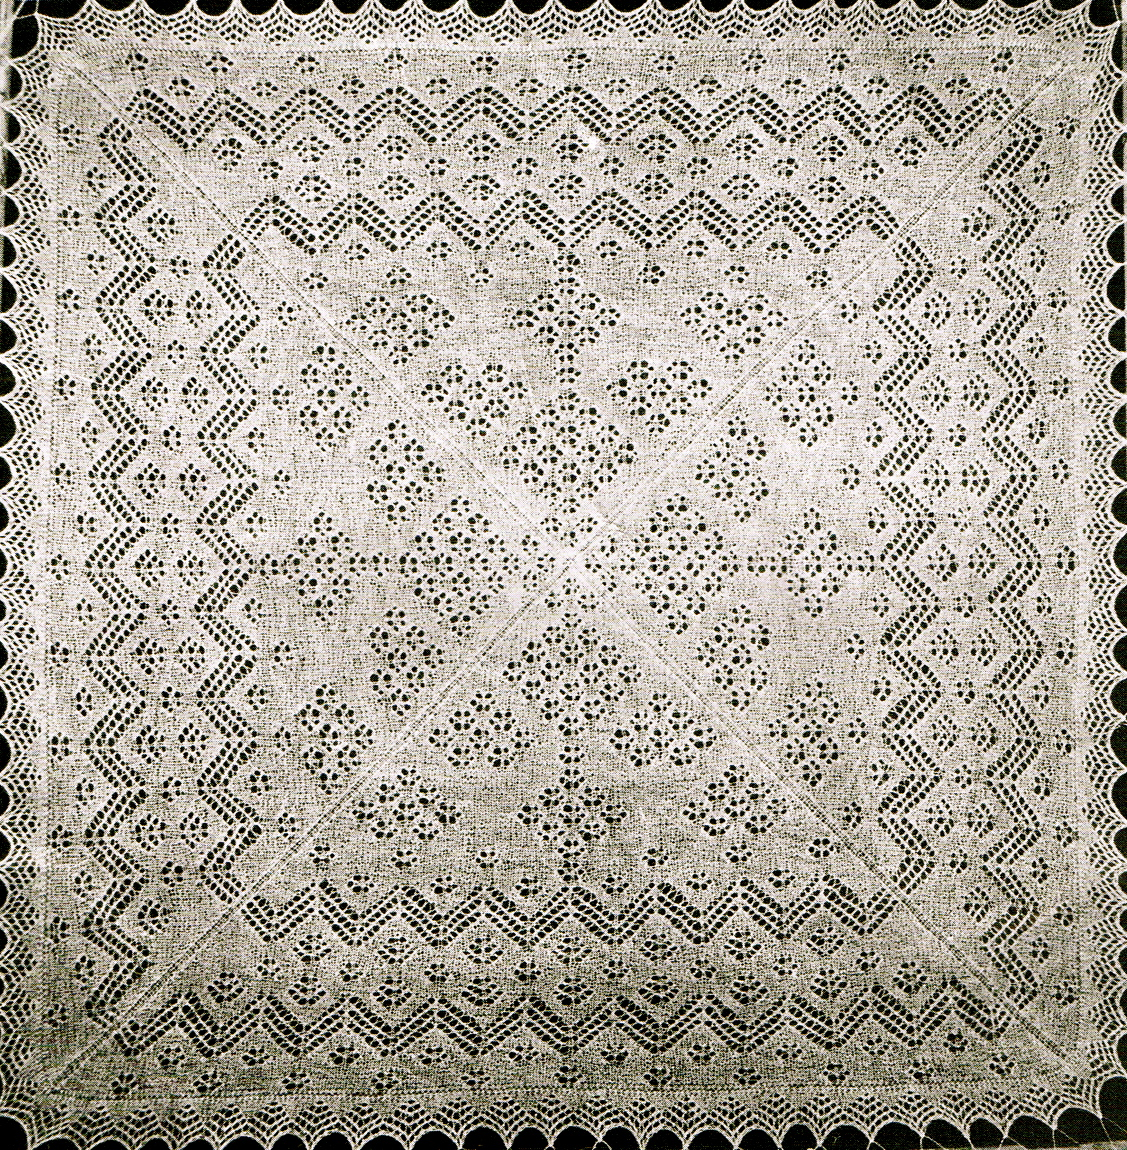 Vintage patterns and making shawls shetland lace shawl bankloansurffo Images